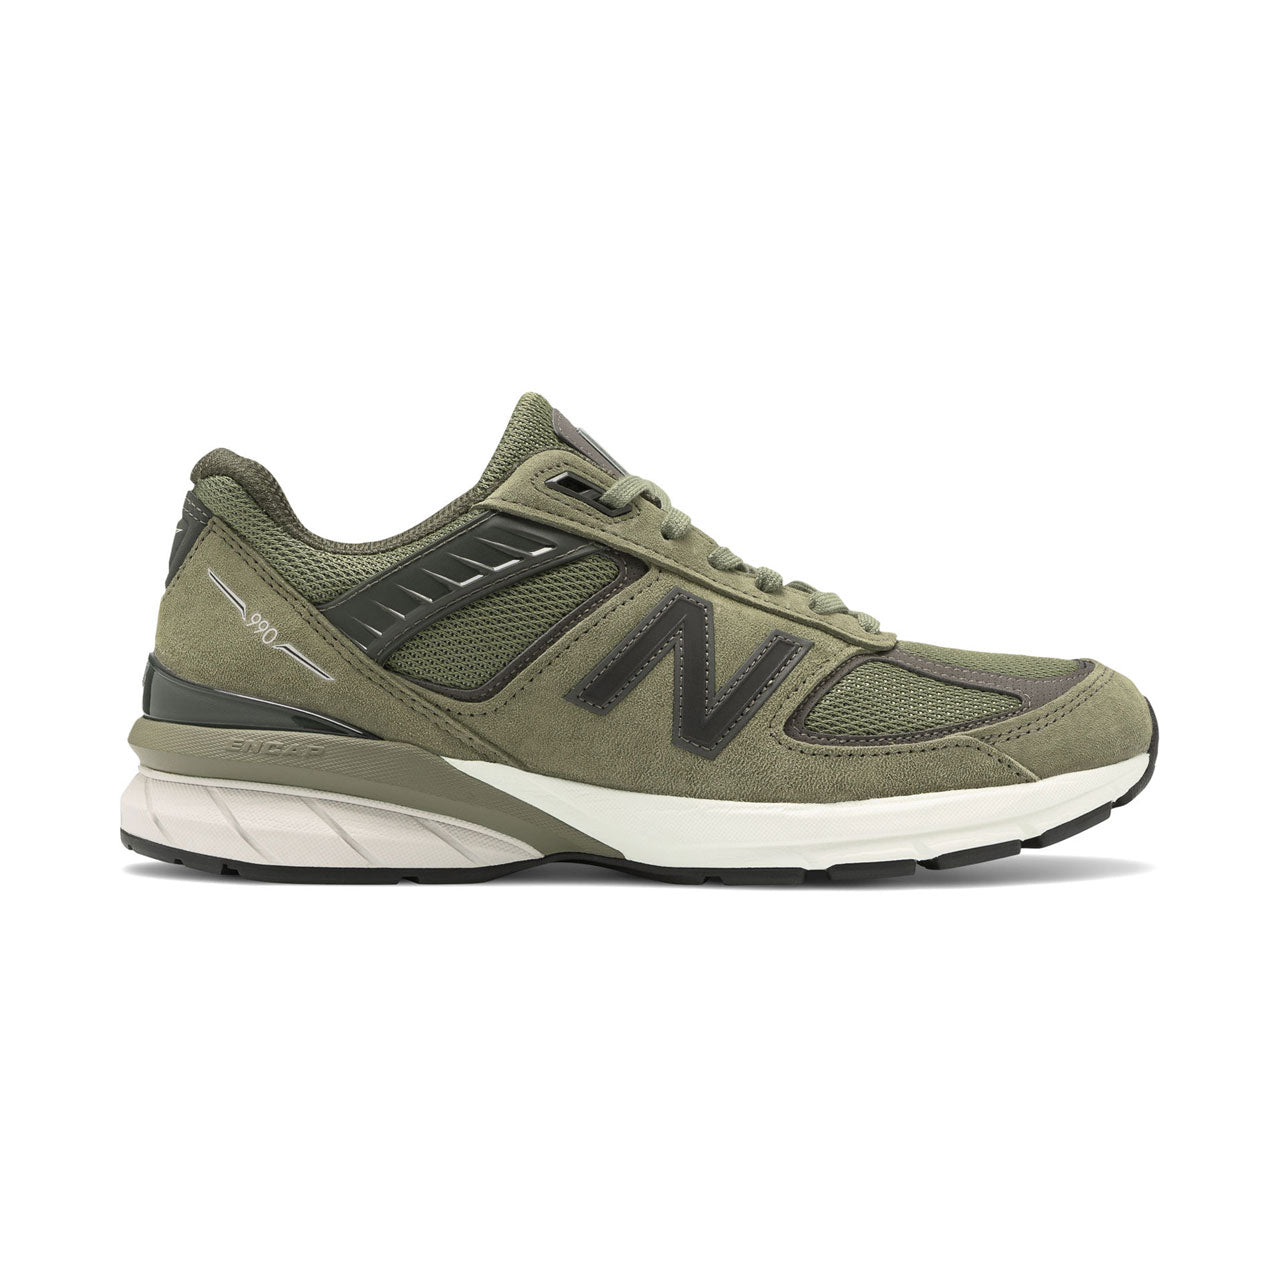 New Balance 990v5 Covert Green Sneakers